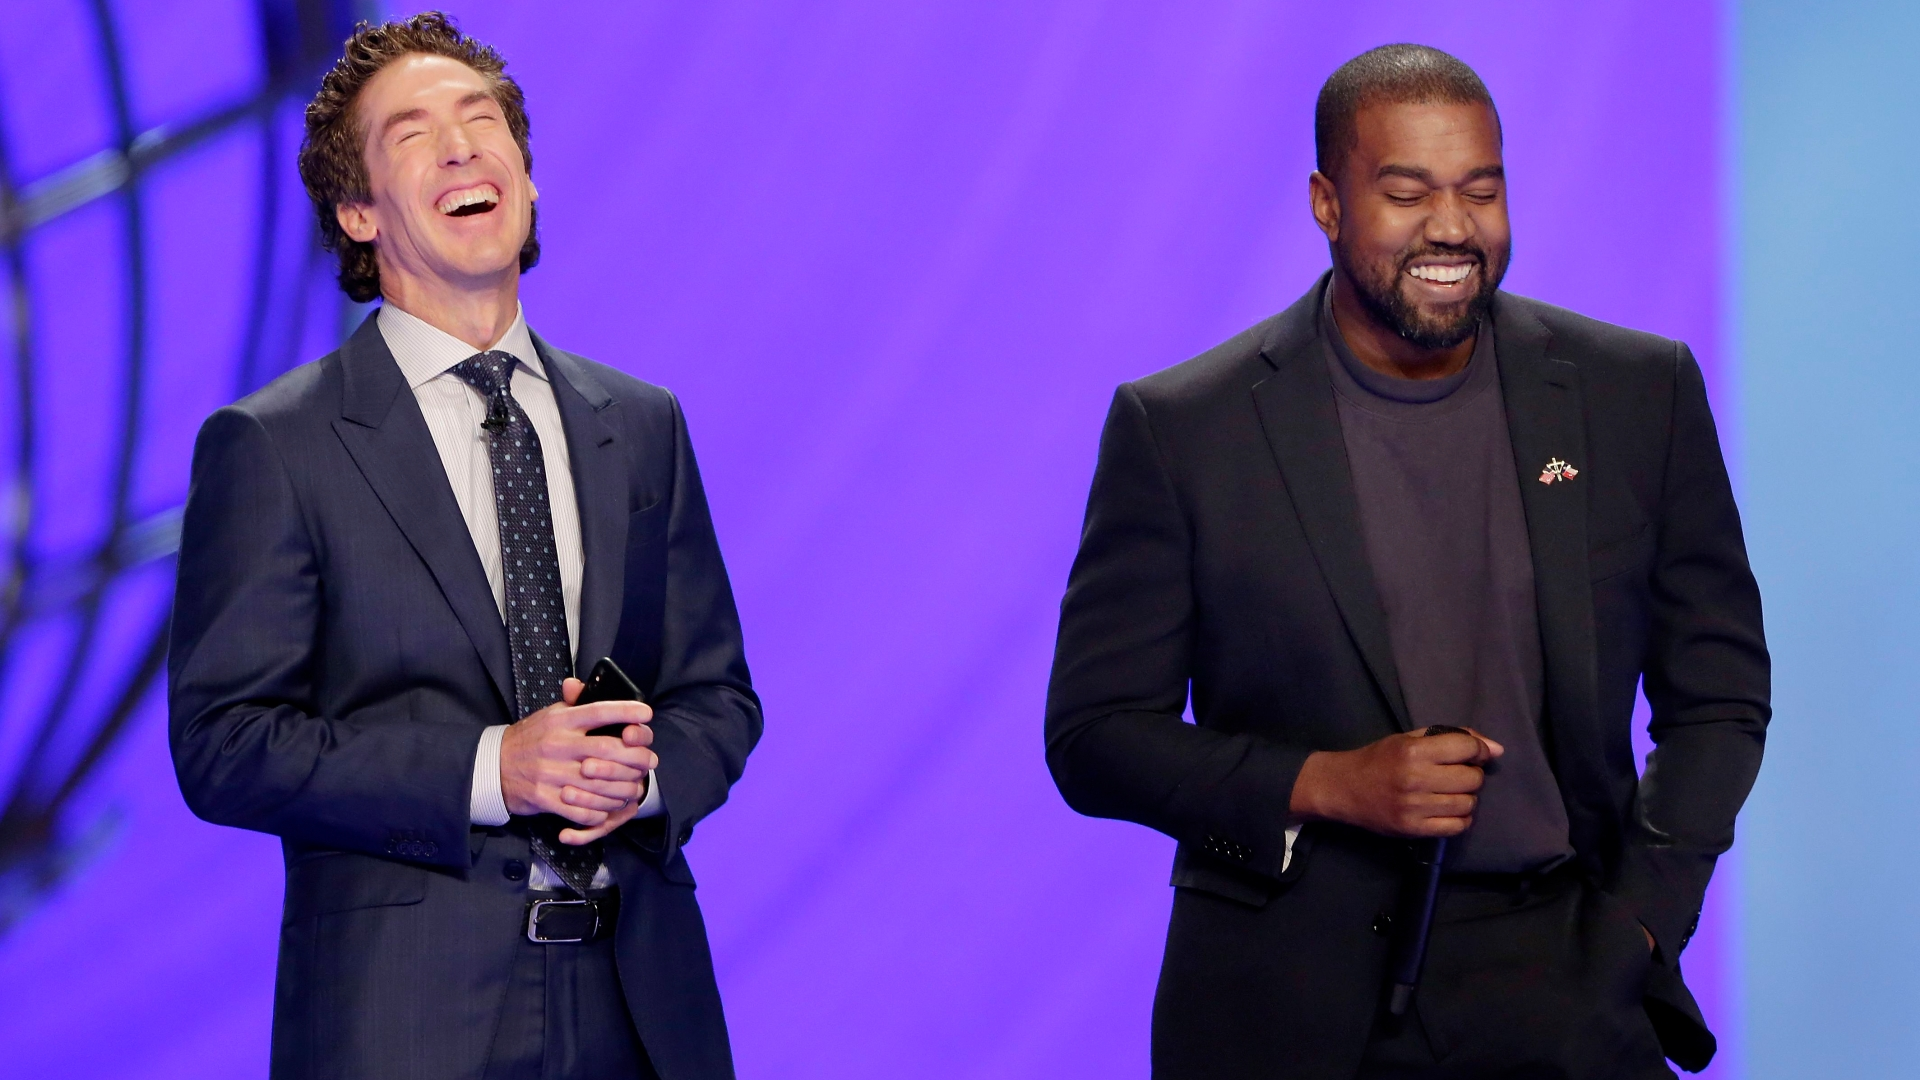 Kanye West speaks out about his faith at Joel Osteen's Sunday service